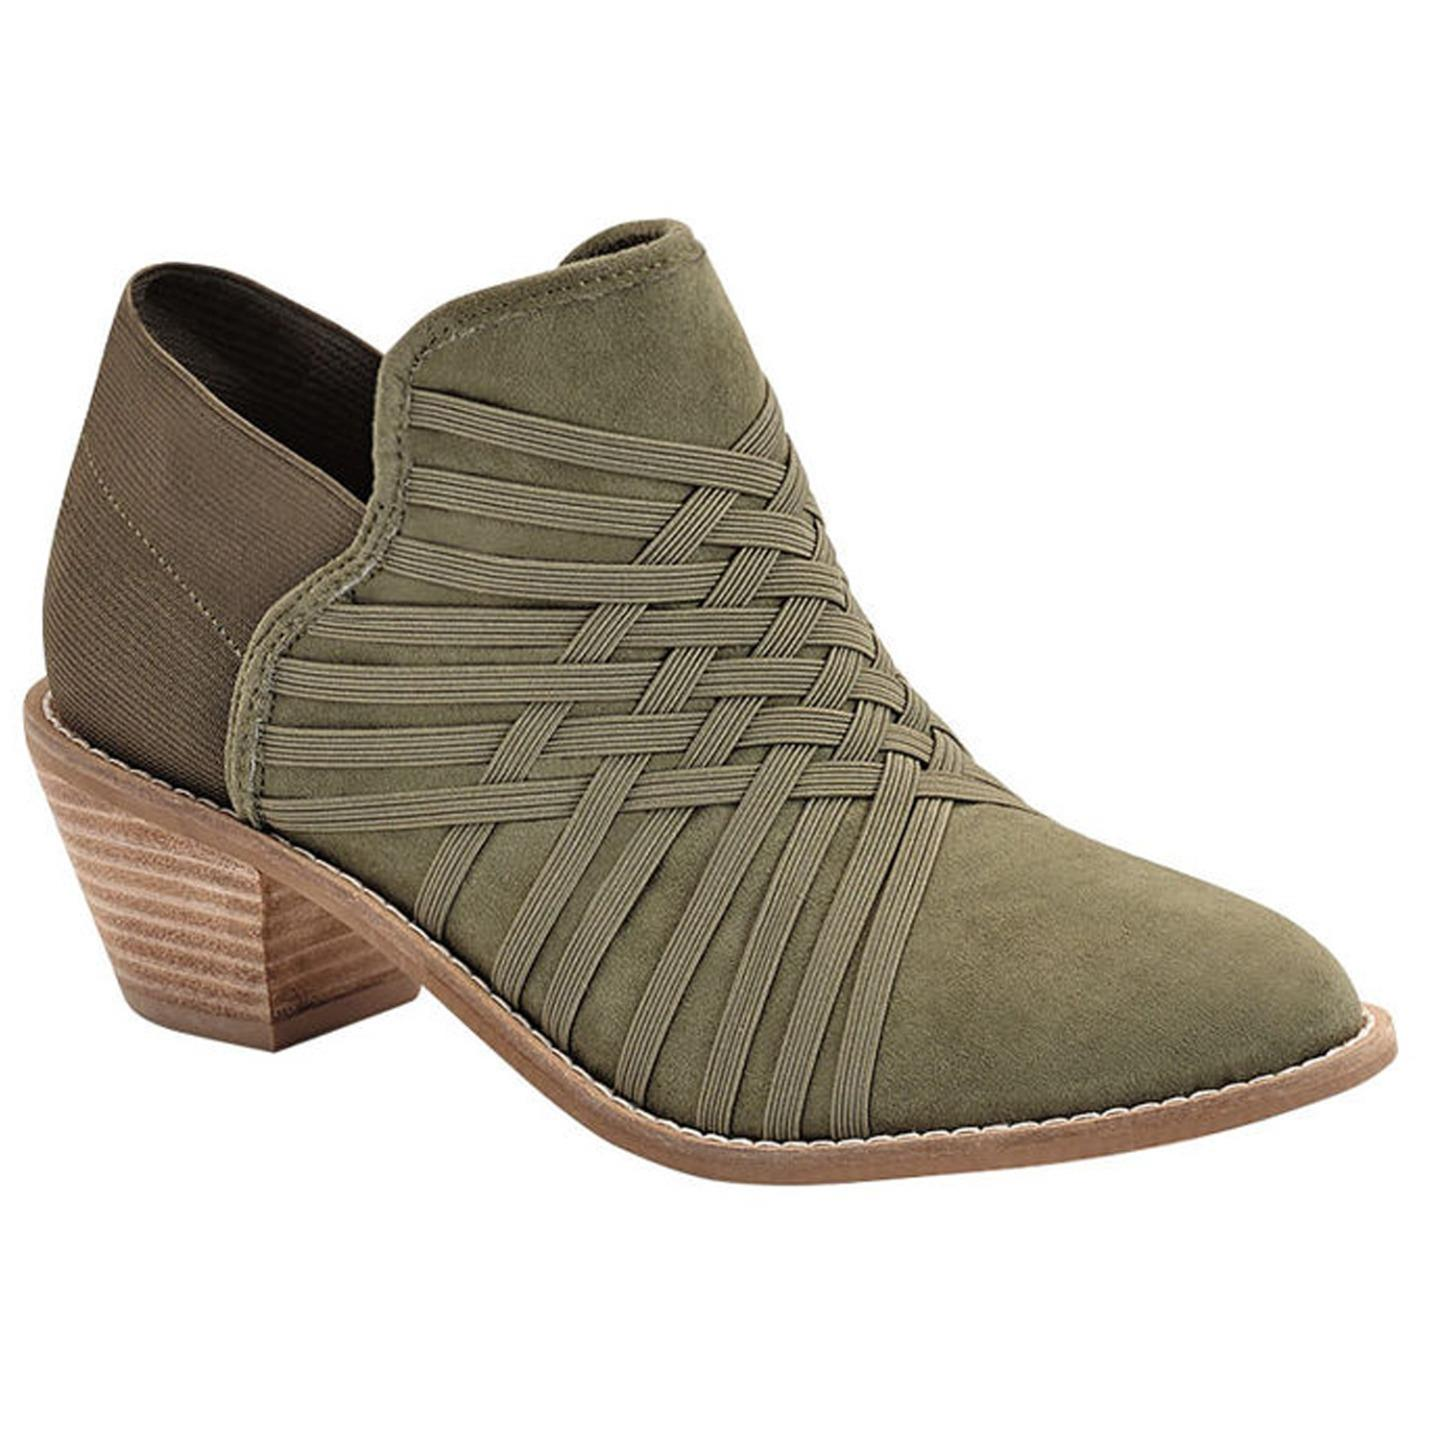 Zee Alexis Womens Molly Ankle Boots Olive 6.5 M